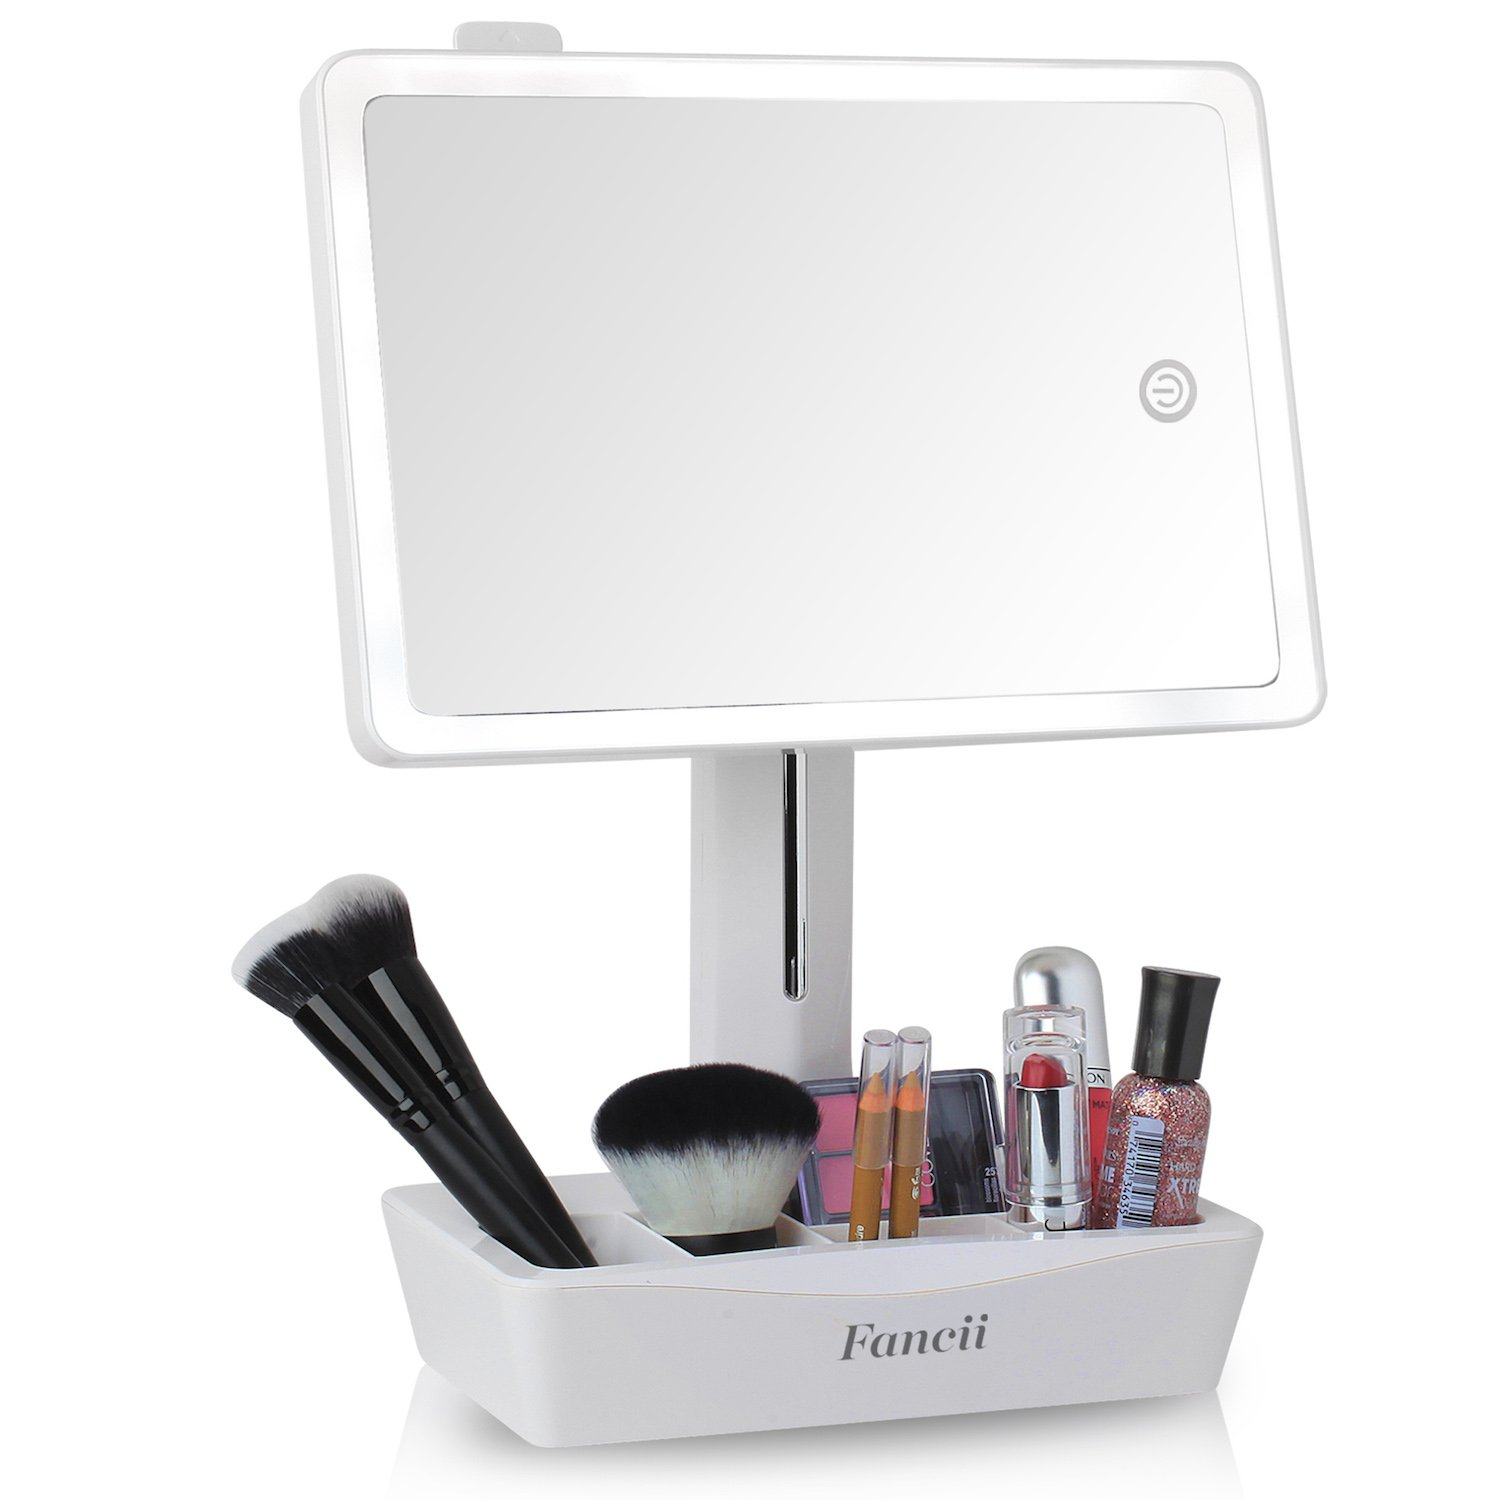 Fancii LED Lighted Large Vanity Makeup Mirror with 10X Magnifying Mirror - Dimmable Natural Light, Touch Screen, Dual Power, Adjustable Stand with Cosmetic Organizer - Gala